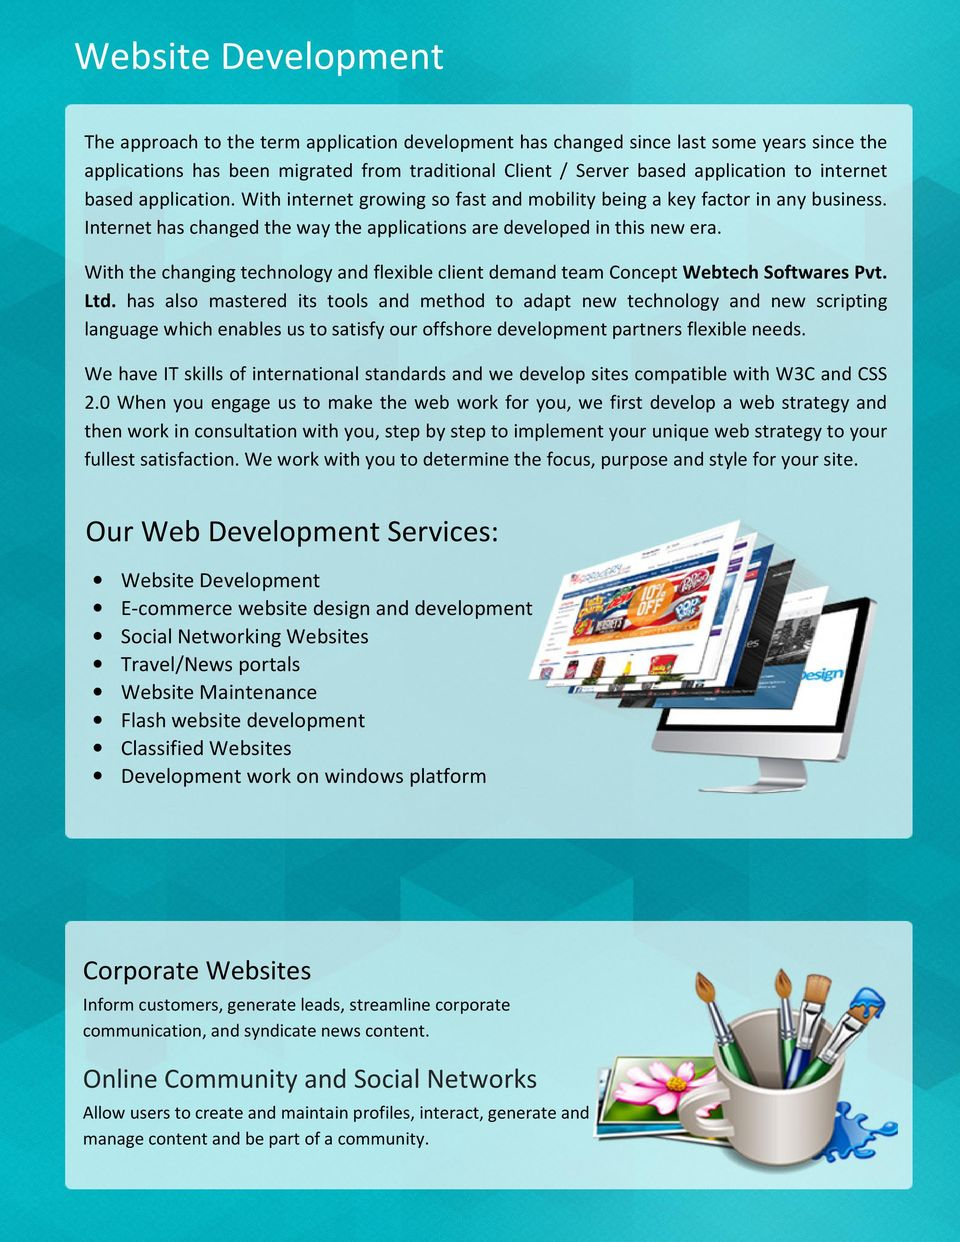 With the changing technology and flexible client demand team Concept Webtech Softwares Pvt. Ltd.